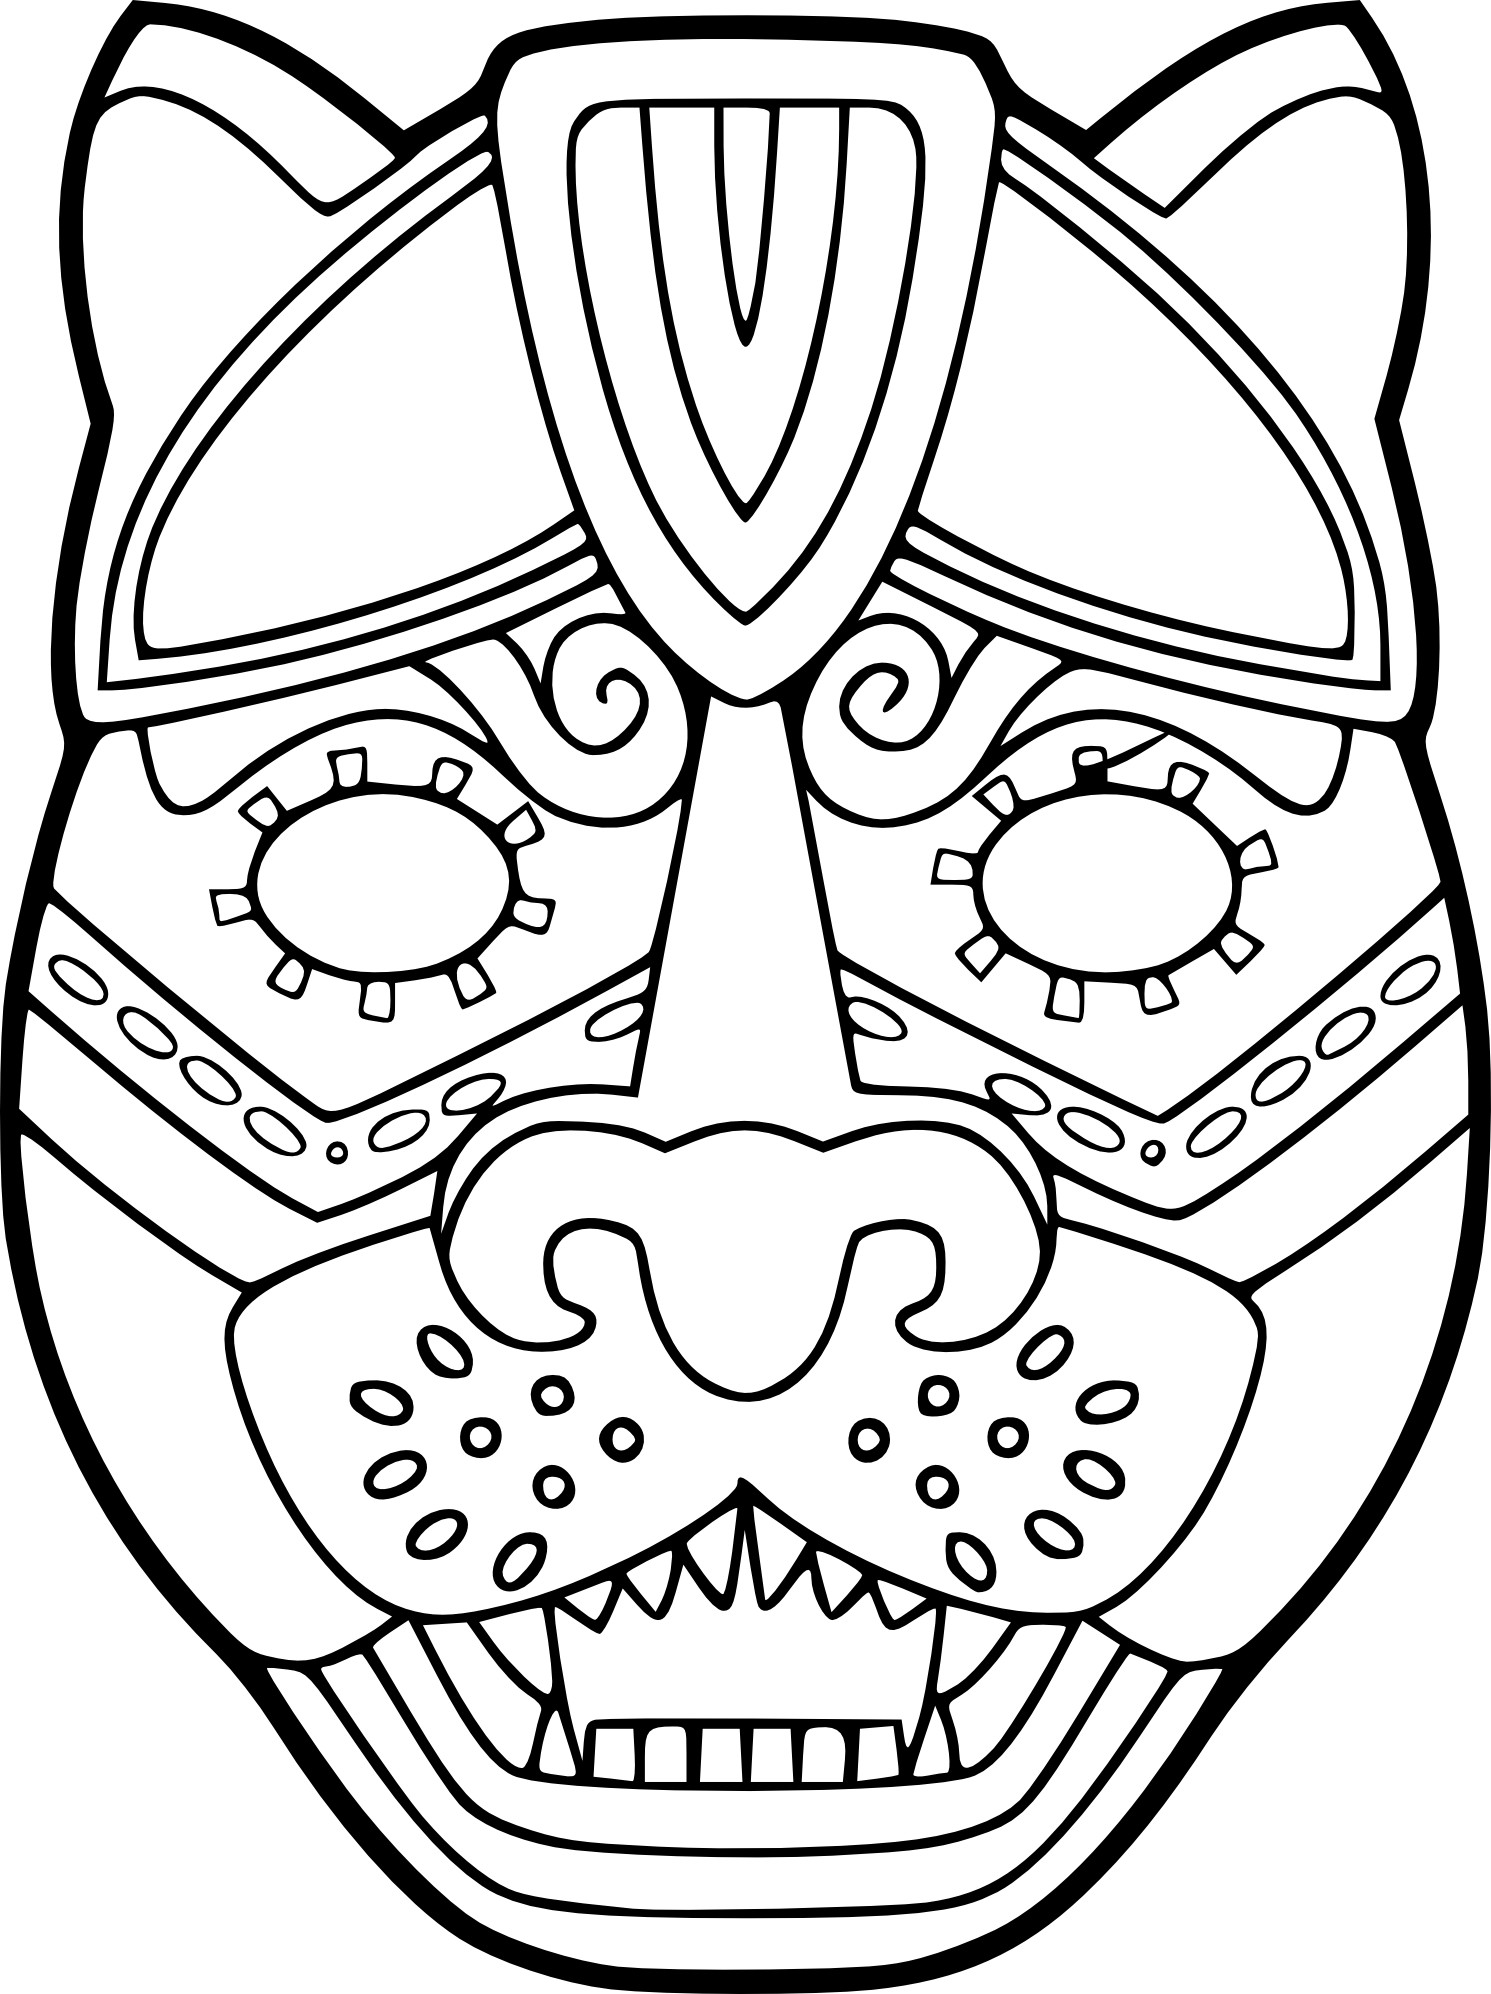 Lego coloring pages coloring pages - Coloriage masque ...